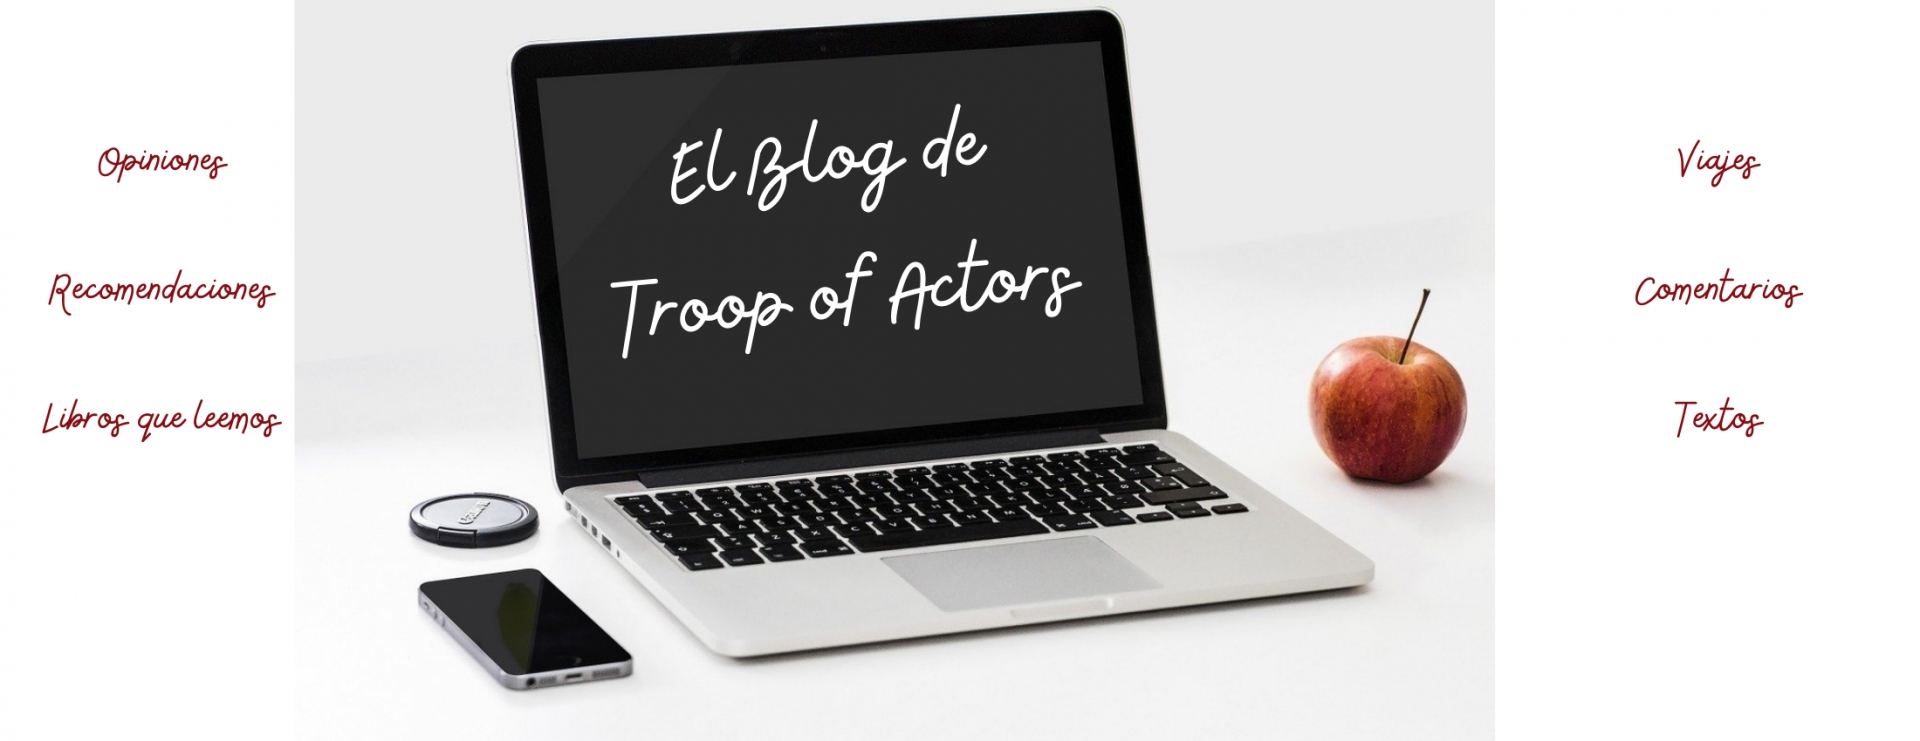 El blog de Troop of Actors